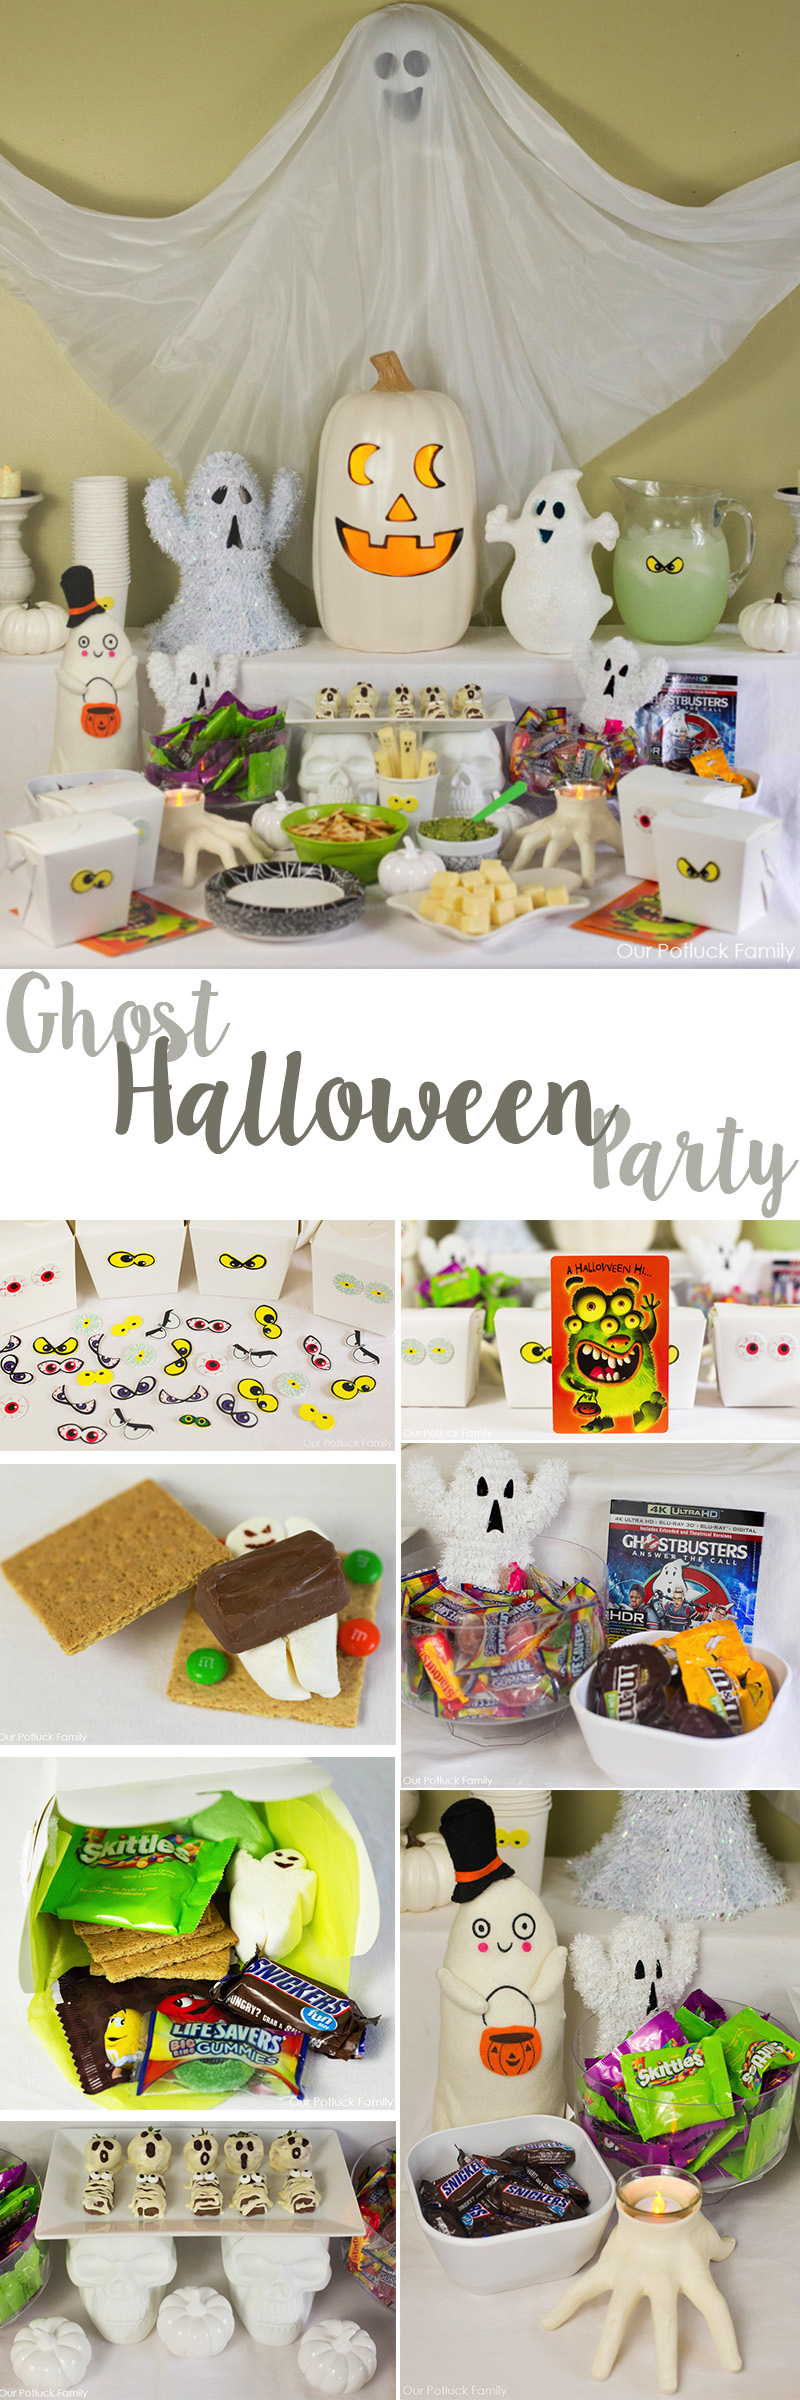 ghost-halloween-party